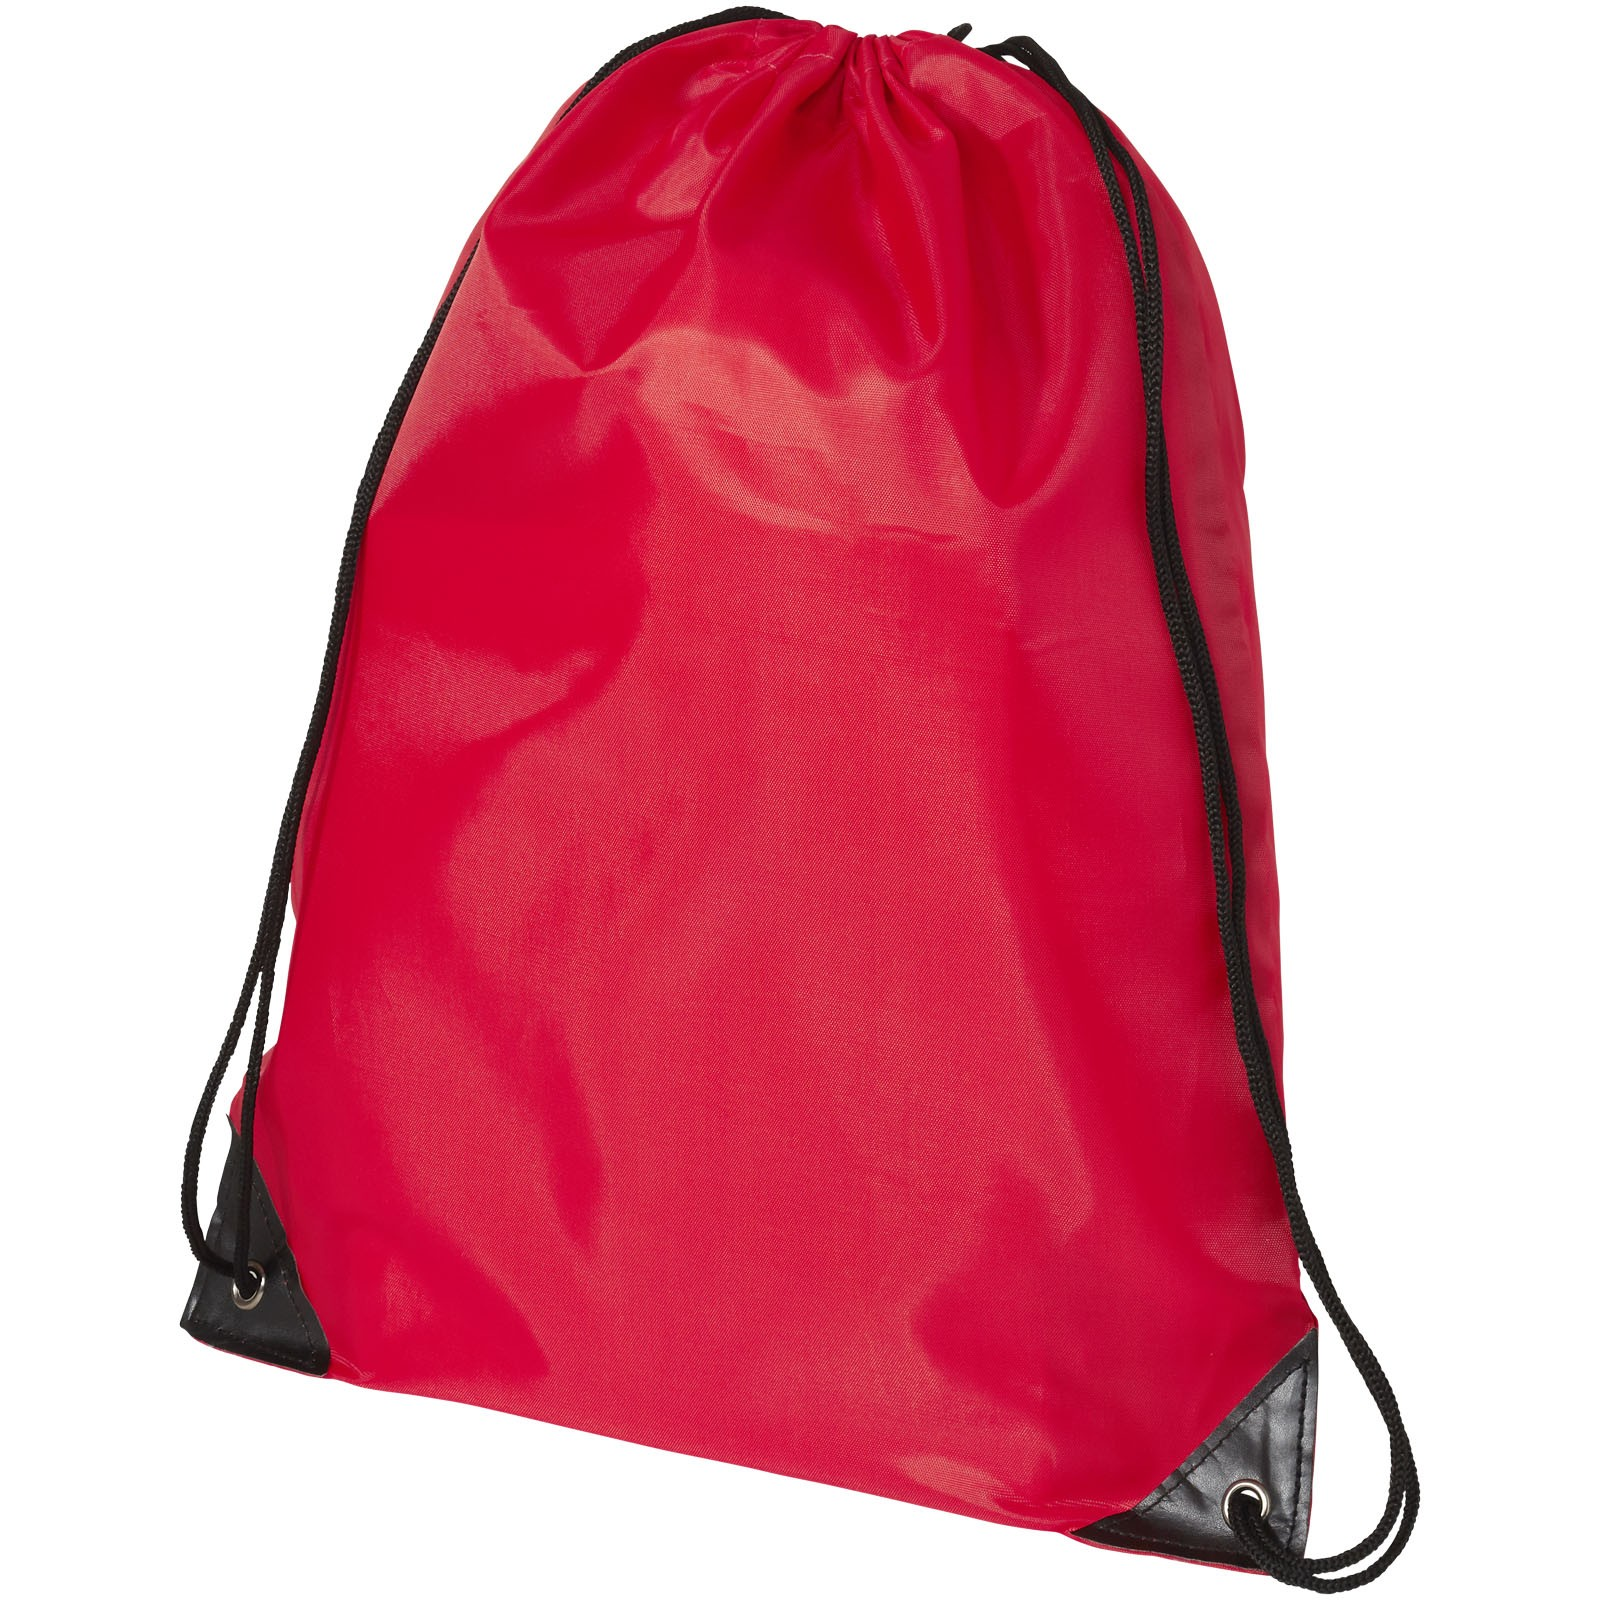 Oriole premium drawstring backpack - Red